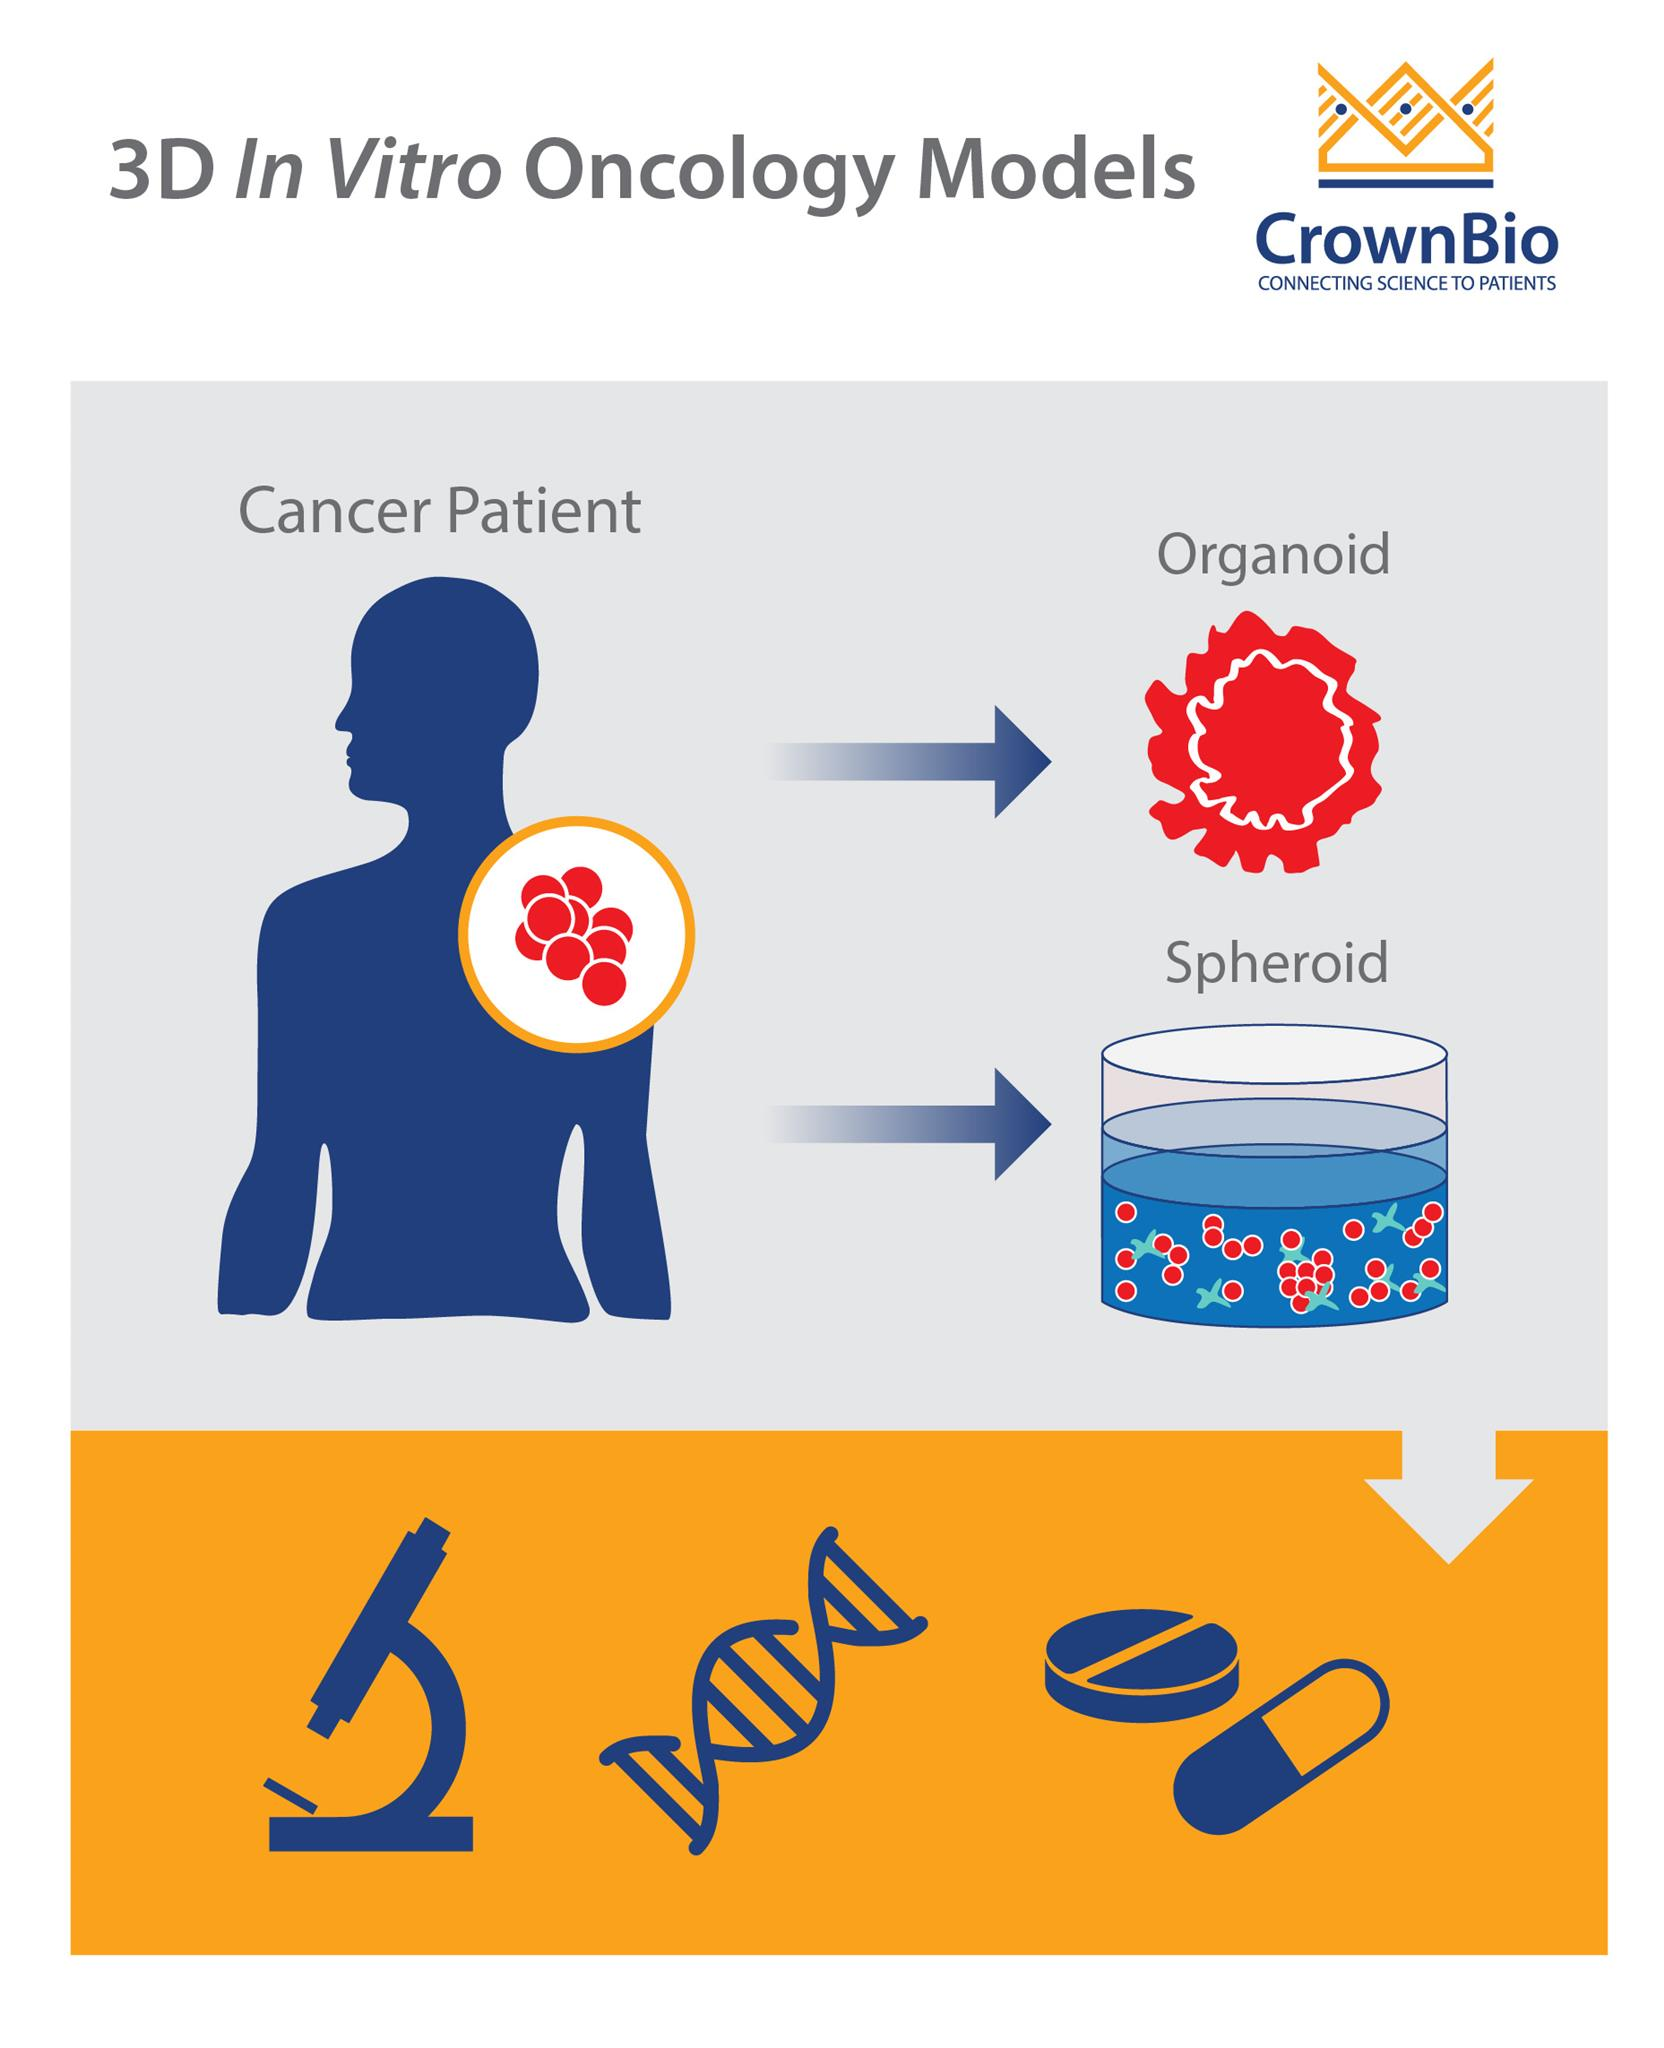 derivation of 3d spheroid and organoid in vitro models from human patient tumors